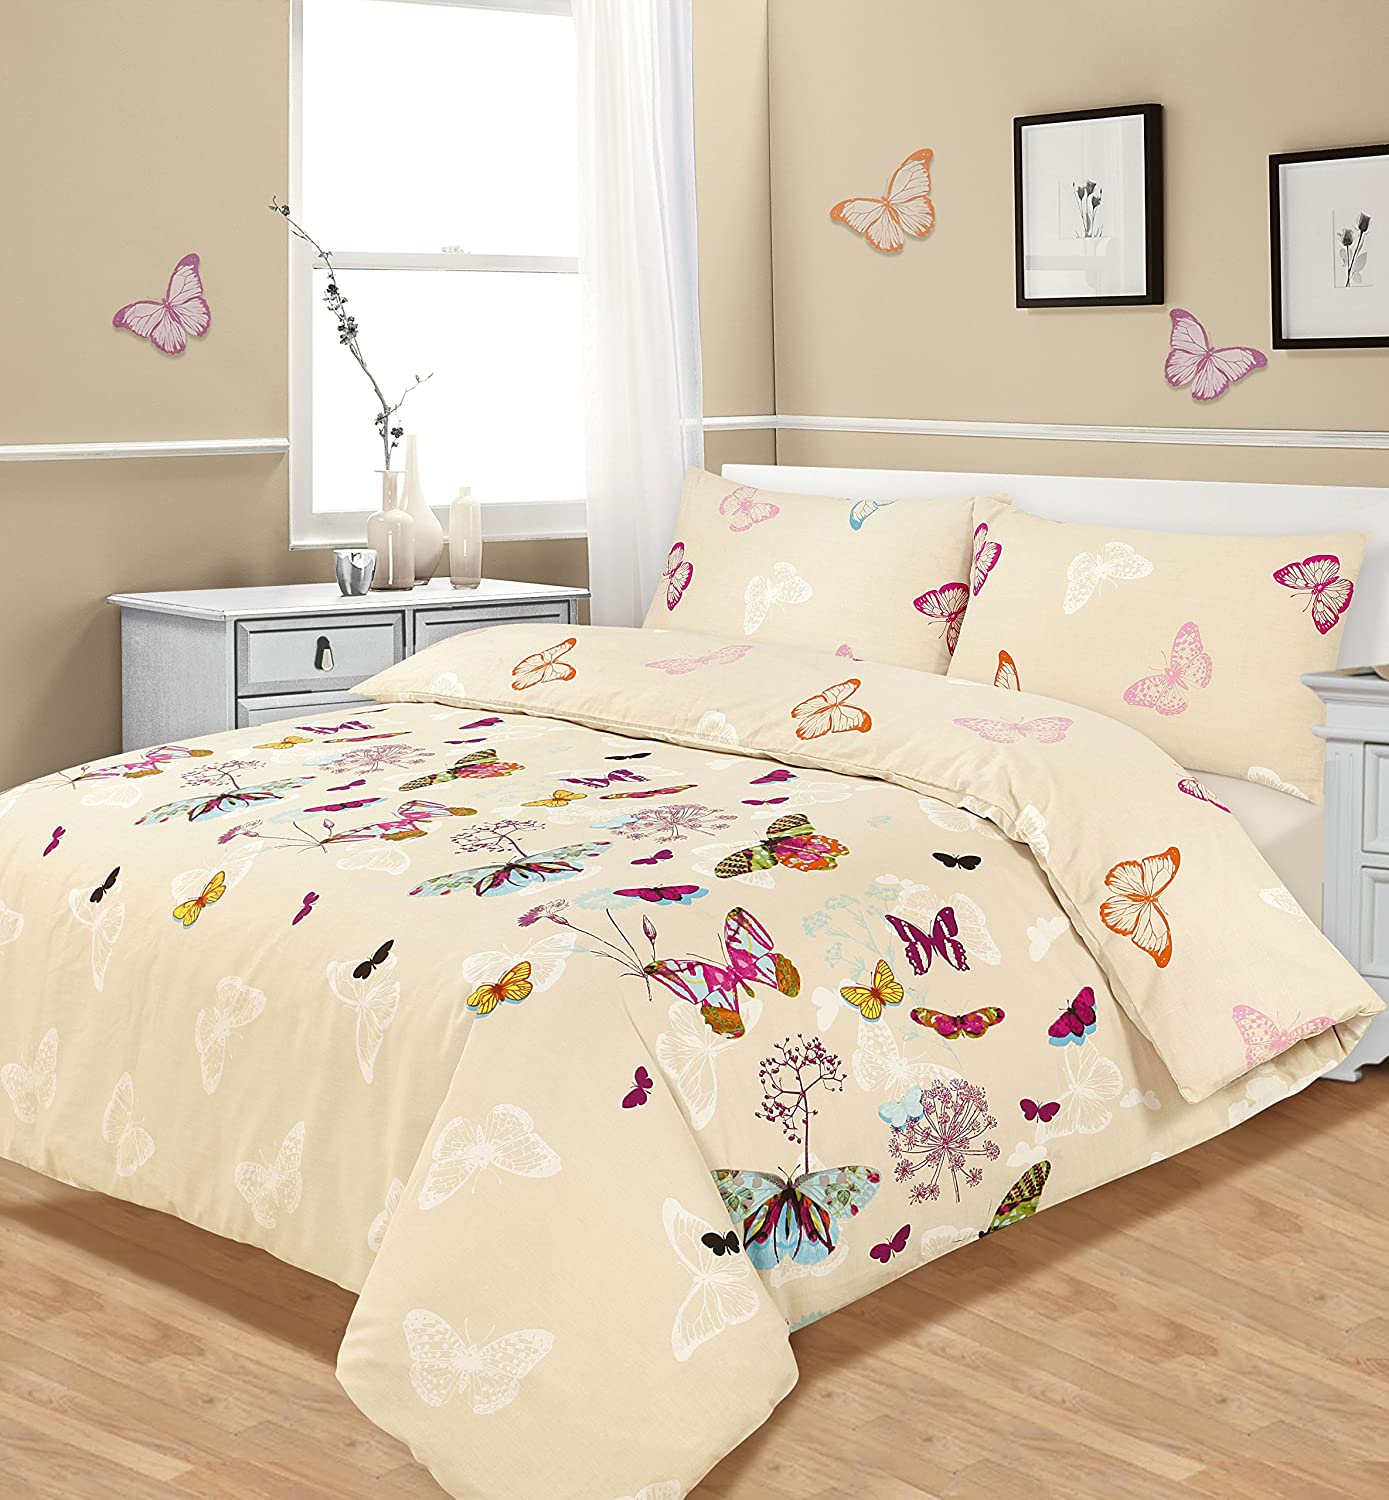 bedding kids floral deal bag sears bedroom pink in eiffel set beautiful photo sets scenic blue walmart sheets real butterfly casa queen paris quilt clearance tower towels comforter mainstays